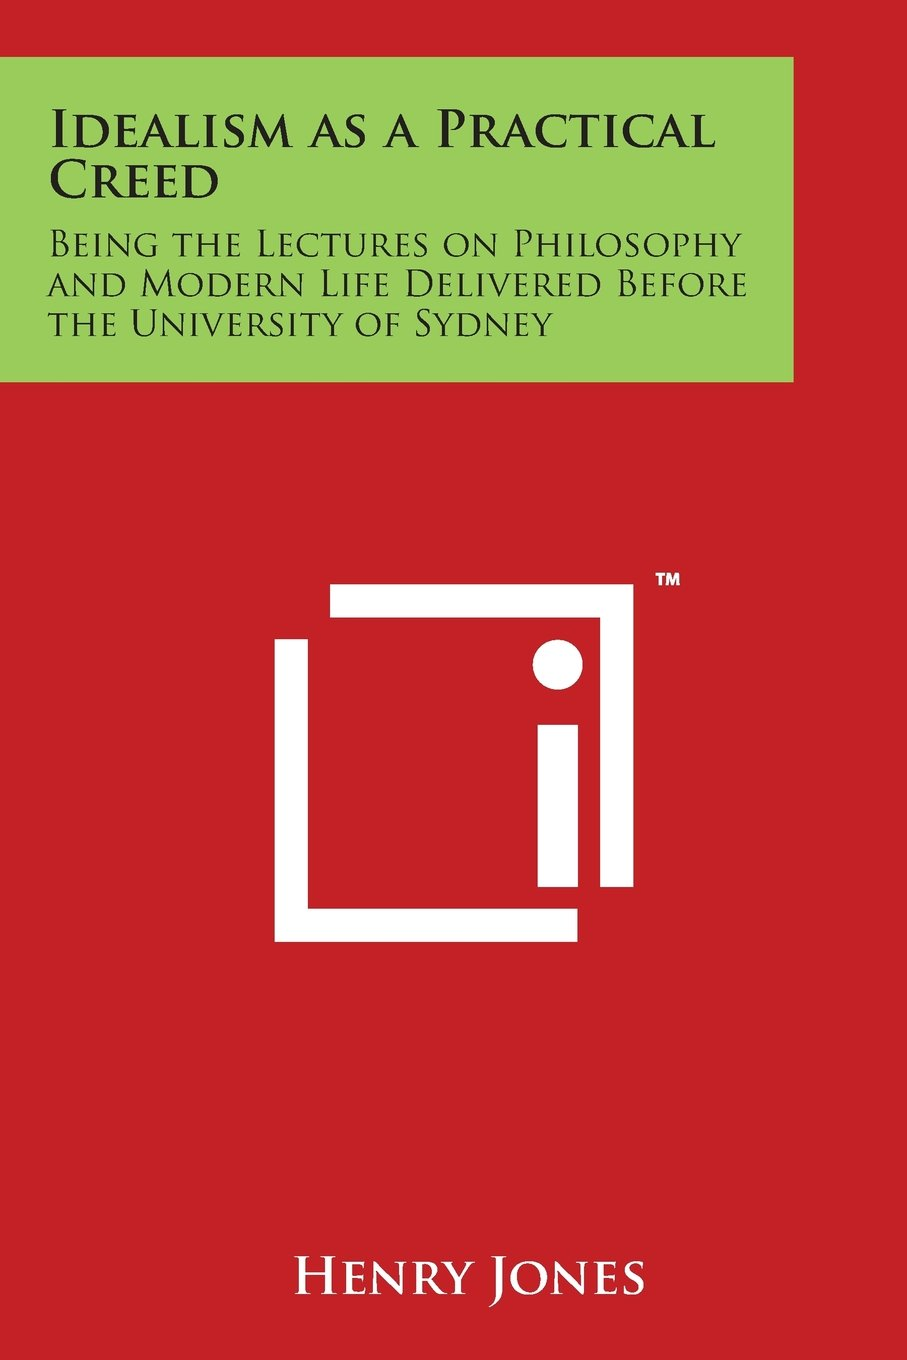 Download Idealism as a Practical Creed: Being the Lectures on Philosophy and Modern Life Delivered Before the University of Sydney ebook